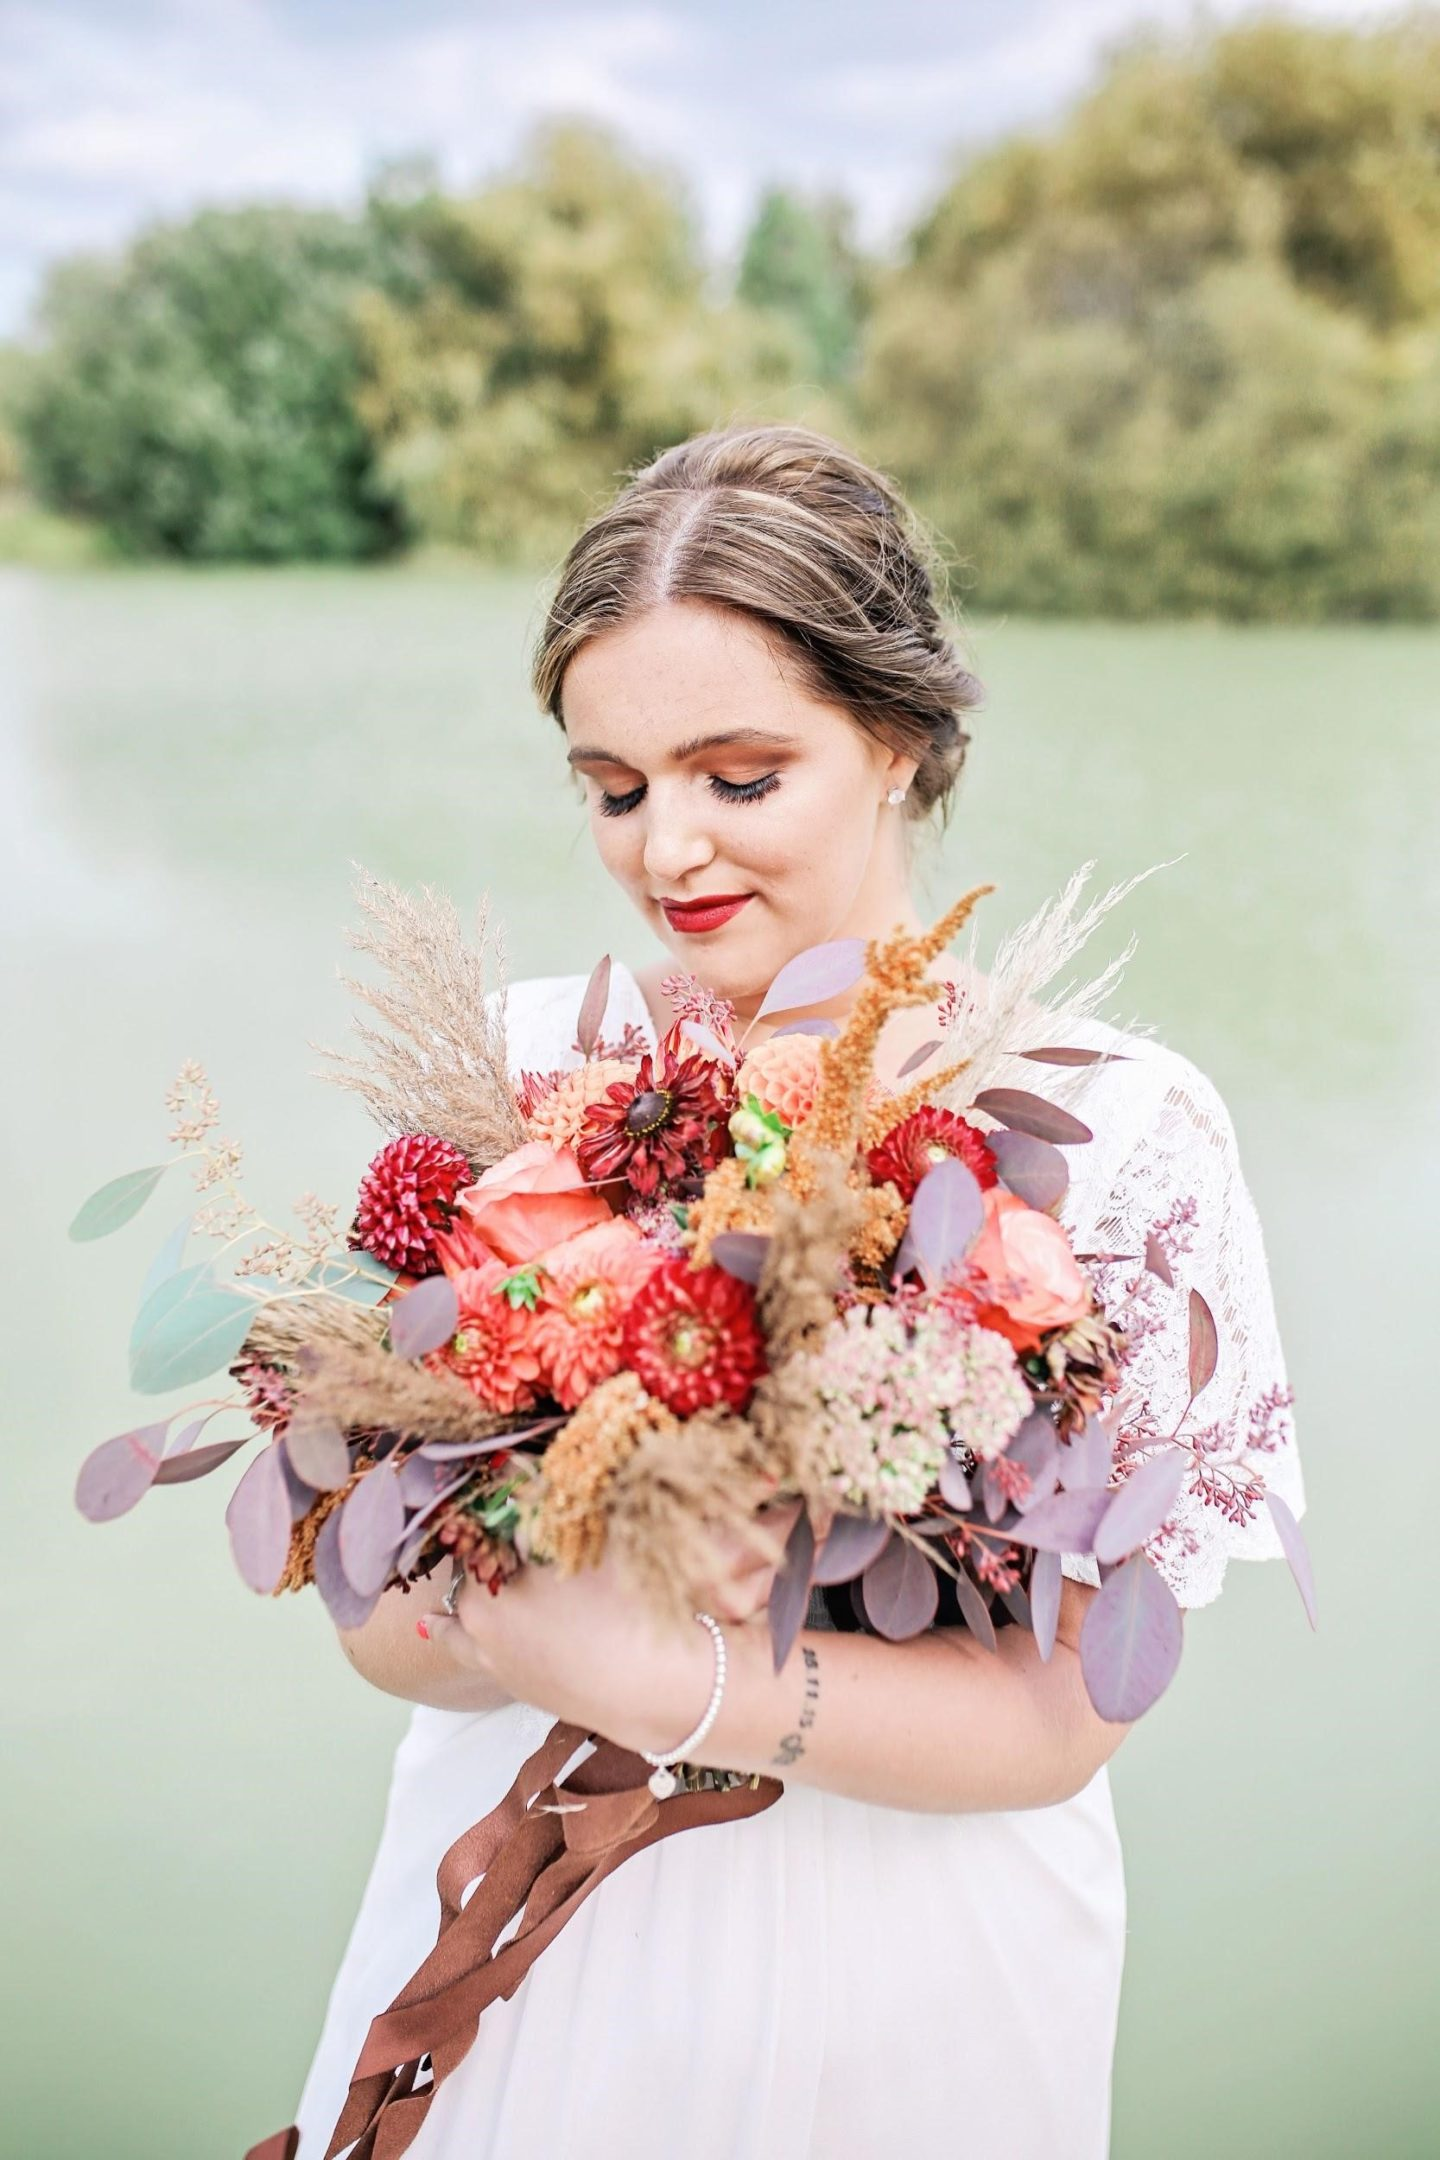 2021 Styling Trends: Top 7 New Year Wedding Styling Trends